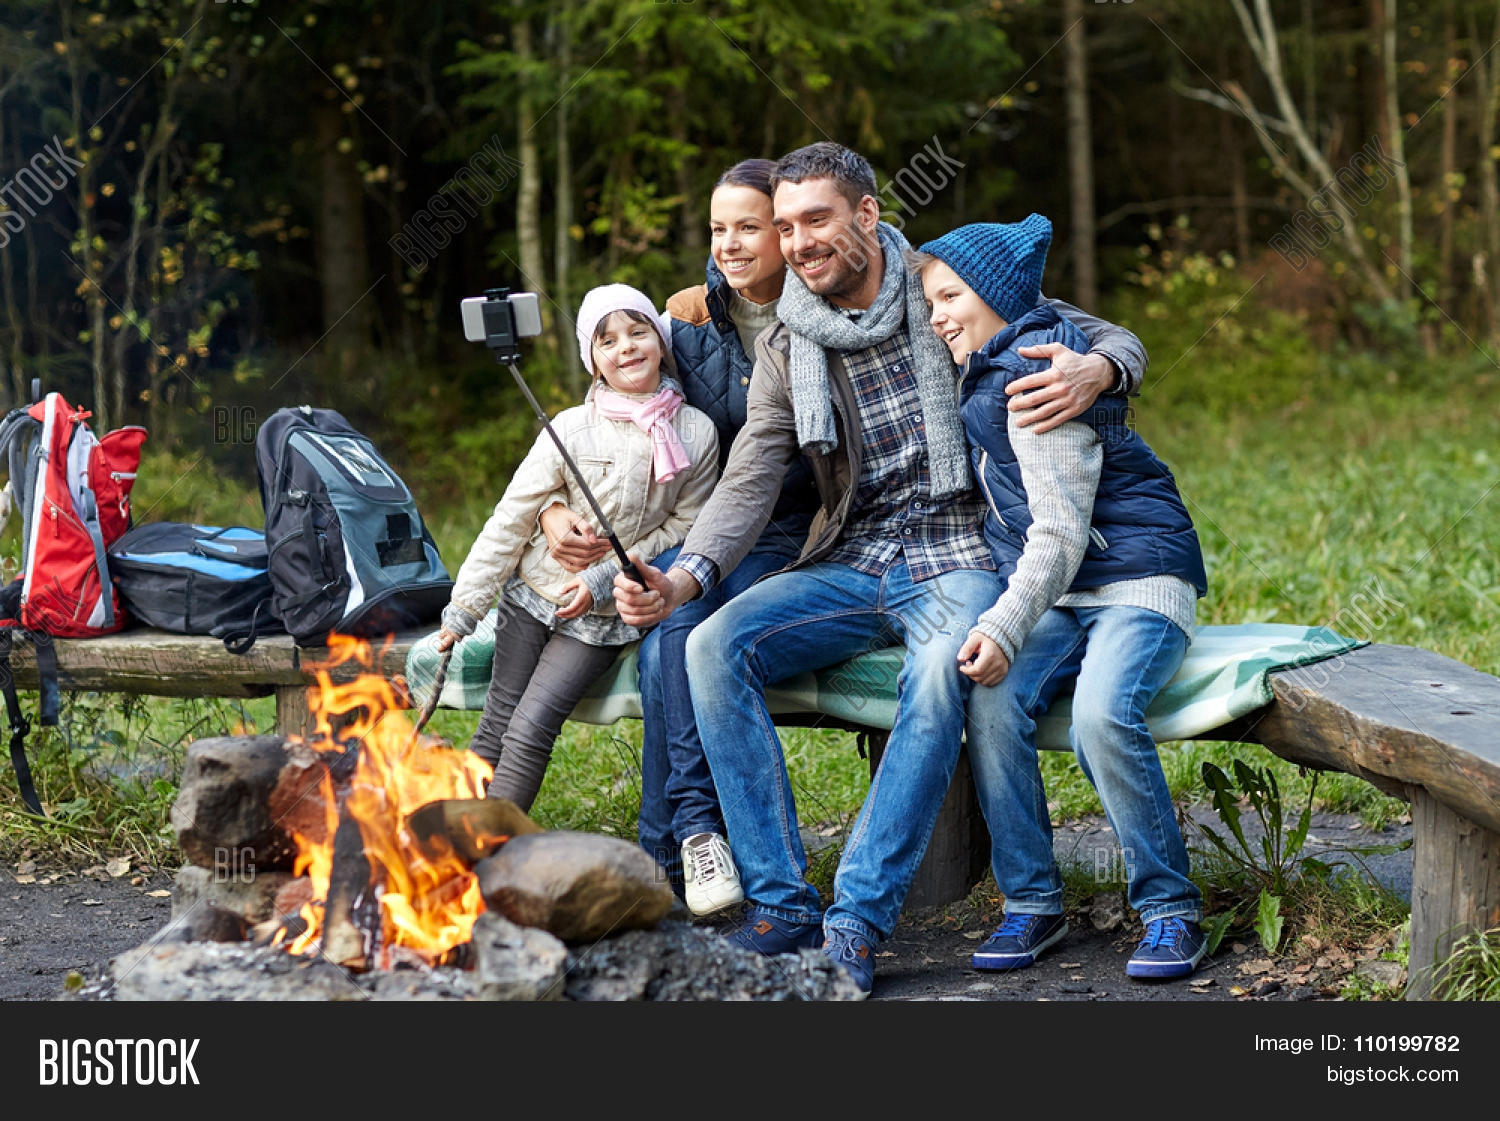 Camping Travel Tourism Hike And People Concept